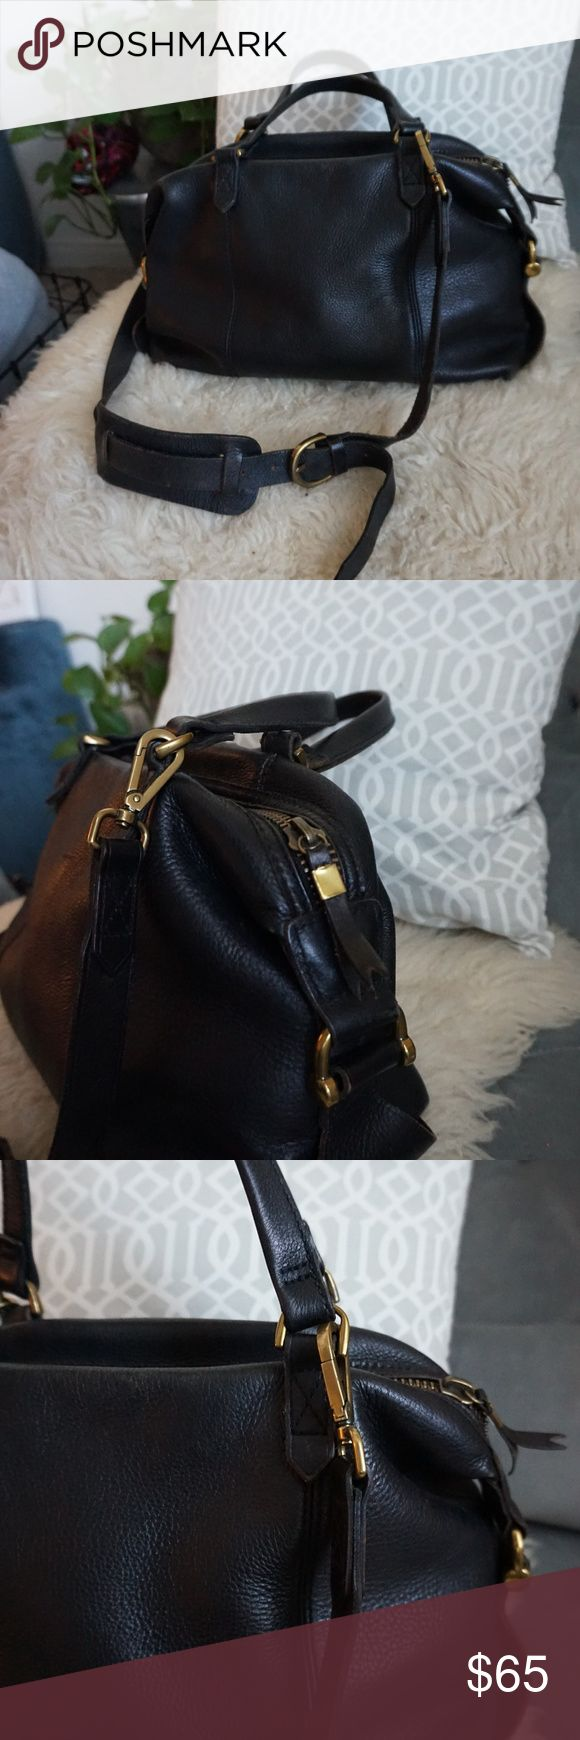 """Madewell dark brown leather crossbody purse Gold hardware, great condition, 100% leather. Normal wear on corners of purse.  Length:15"""" Height: 9"""" Width: 6"""" Madewell Bags Crossbody Bags"""